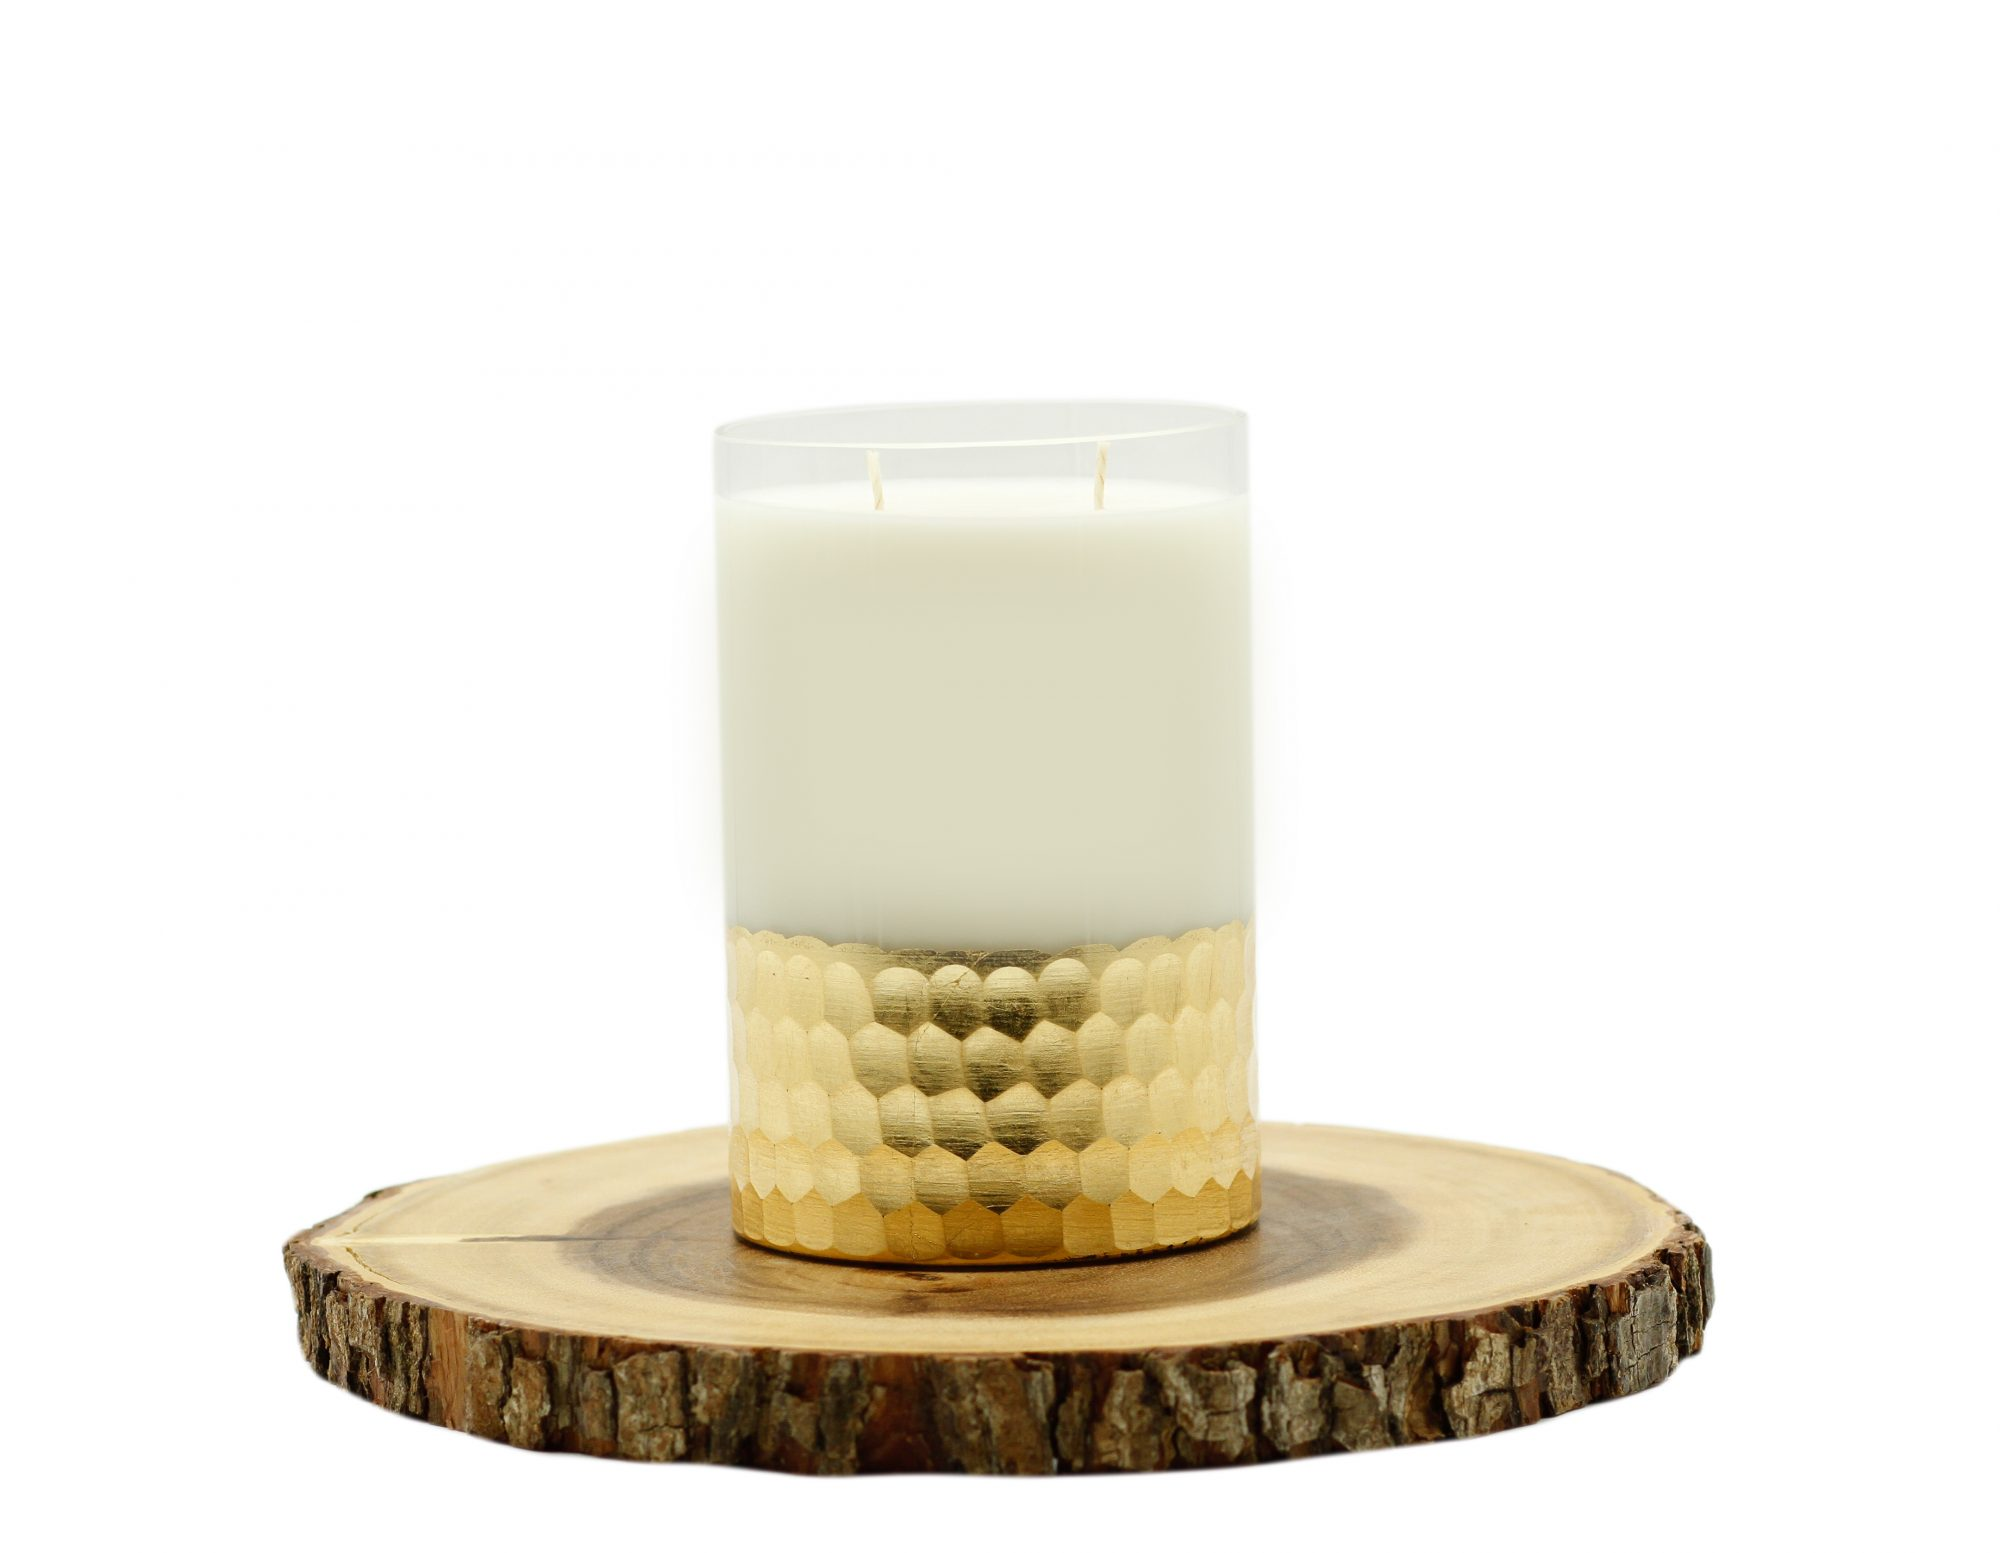 TLD Candles Honeycomb Vase Candle, $45